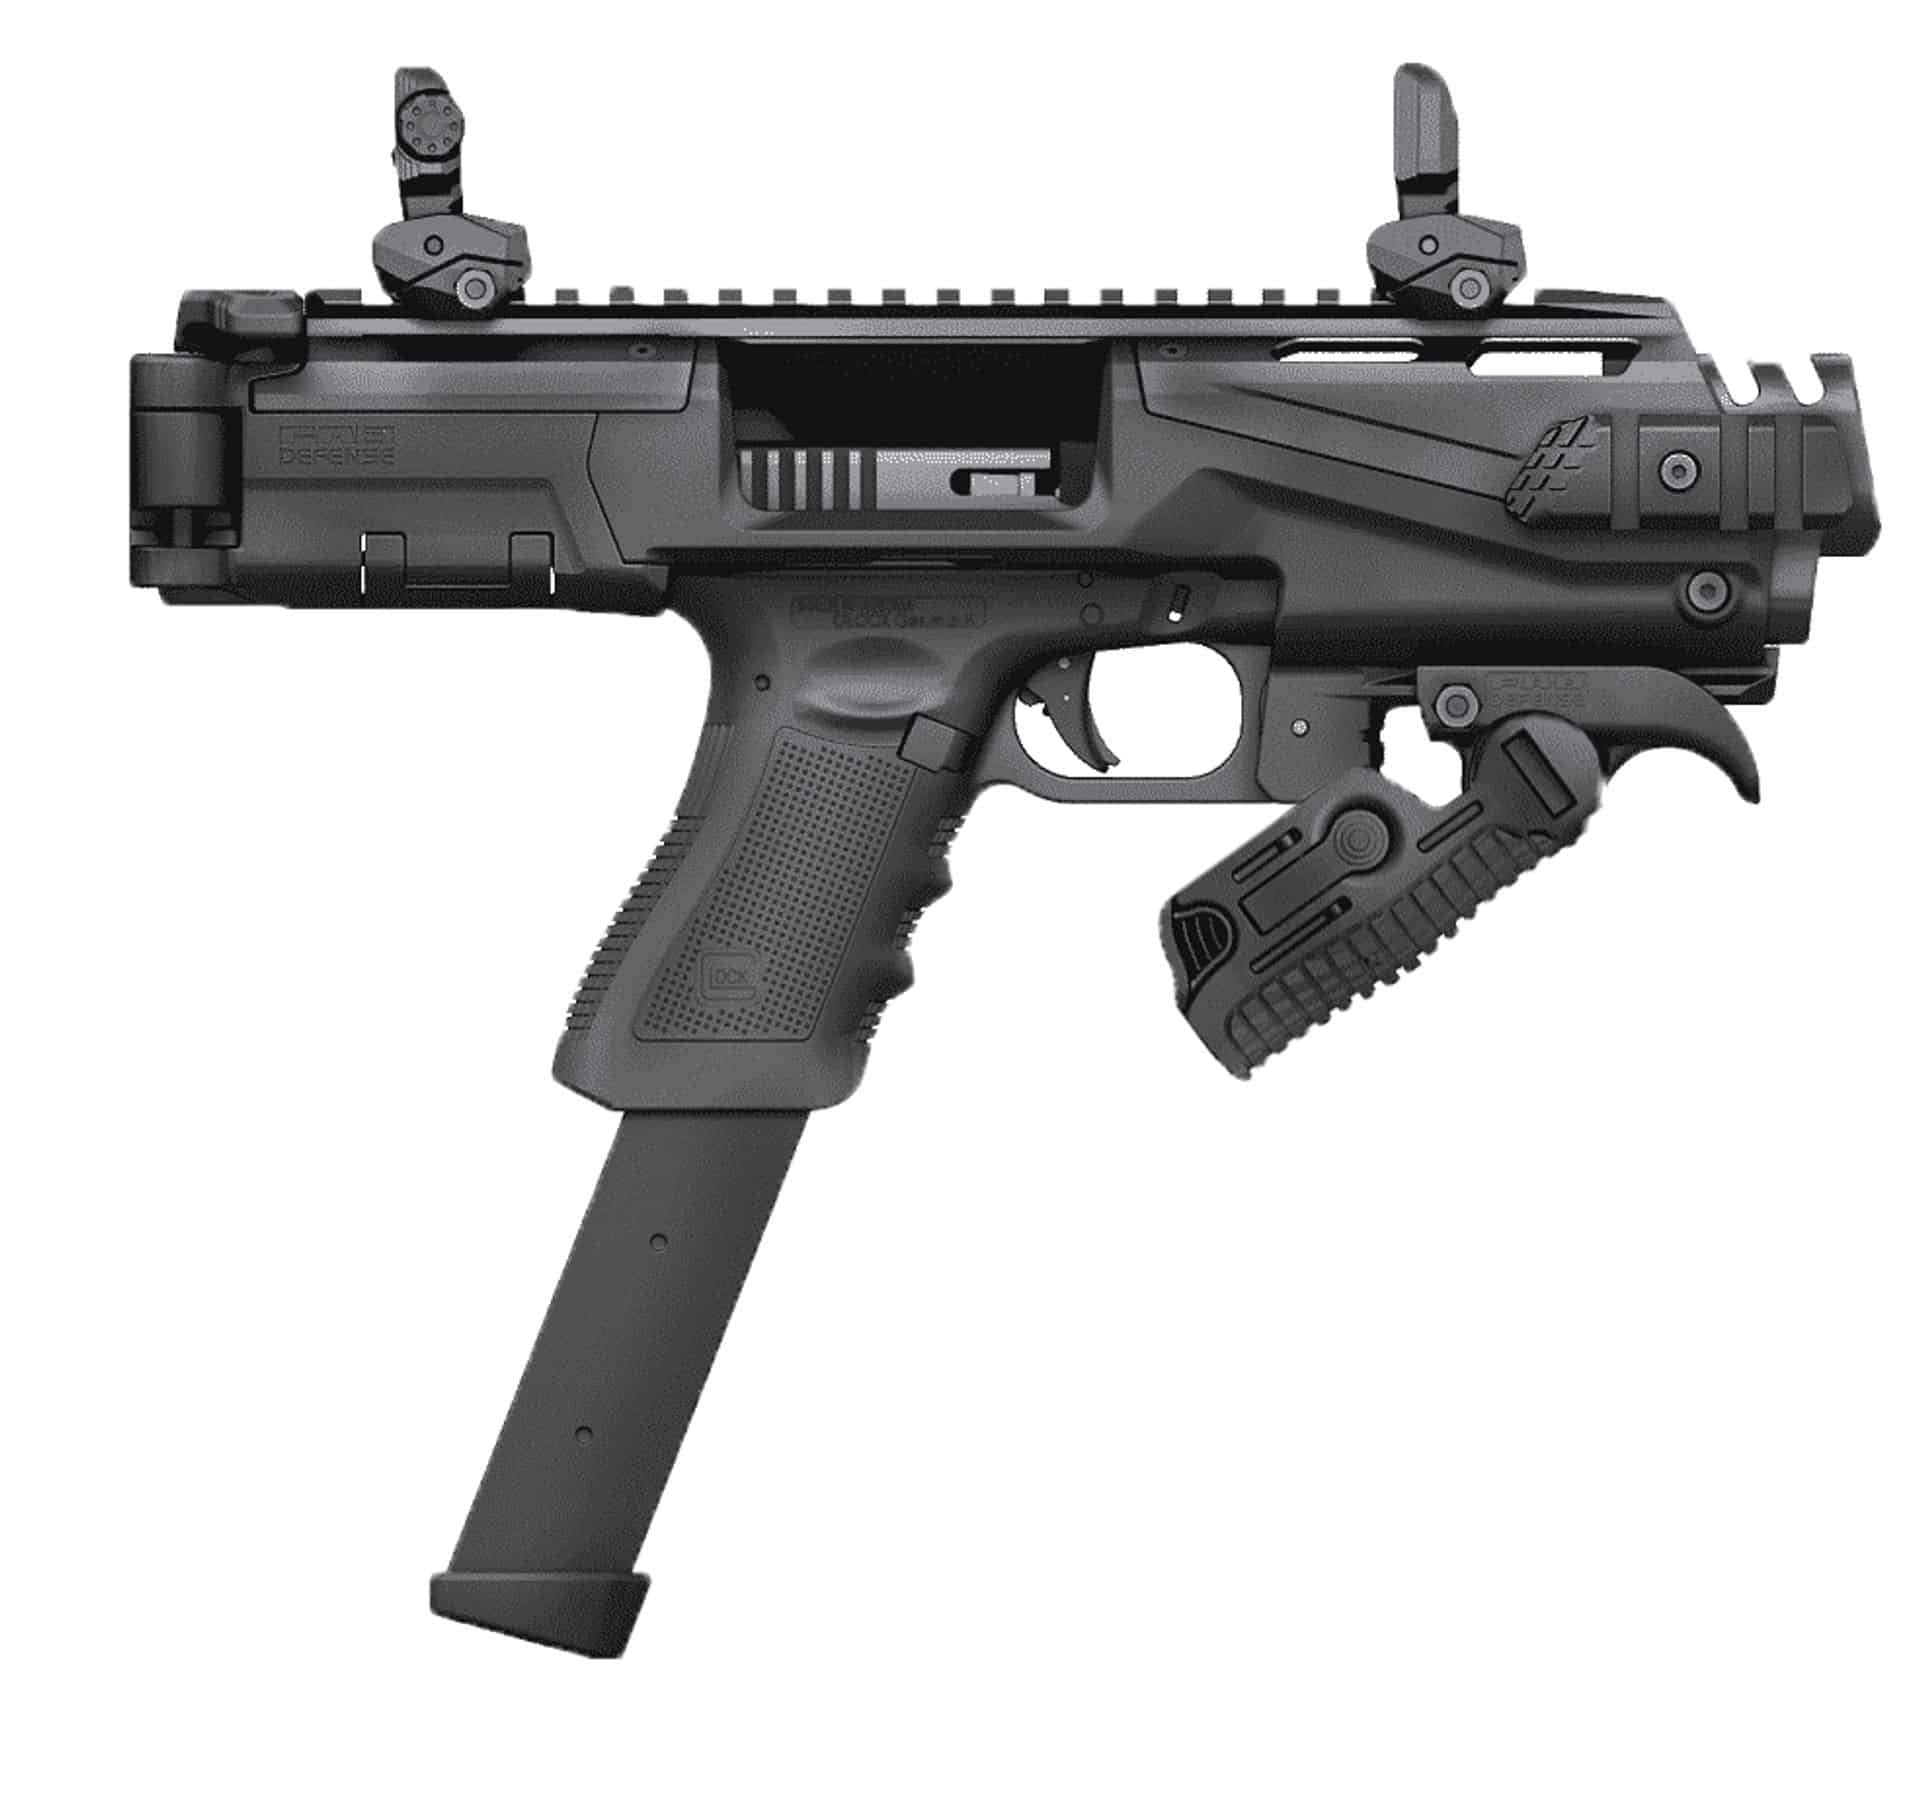 ZFI PDW Ultimate Truck Gun - NON NFA KPOS Scout w/ folding angled foregrip & safety